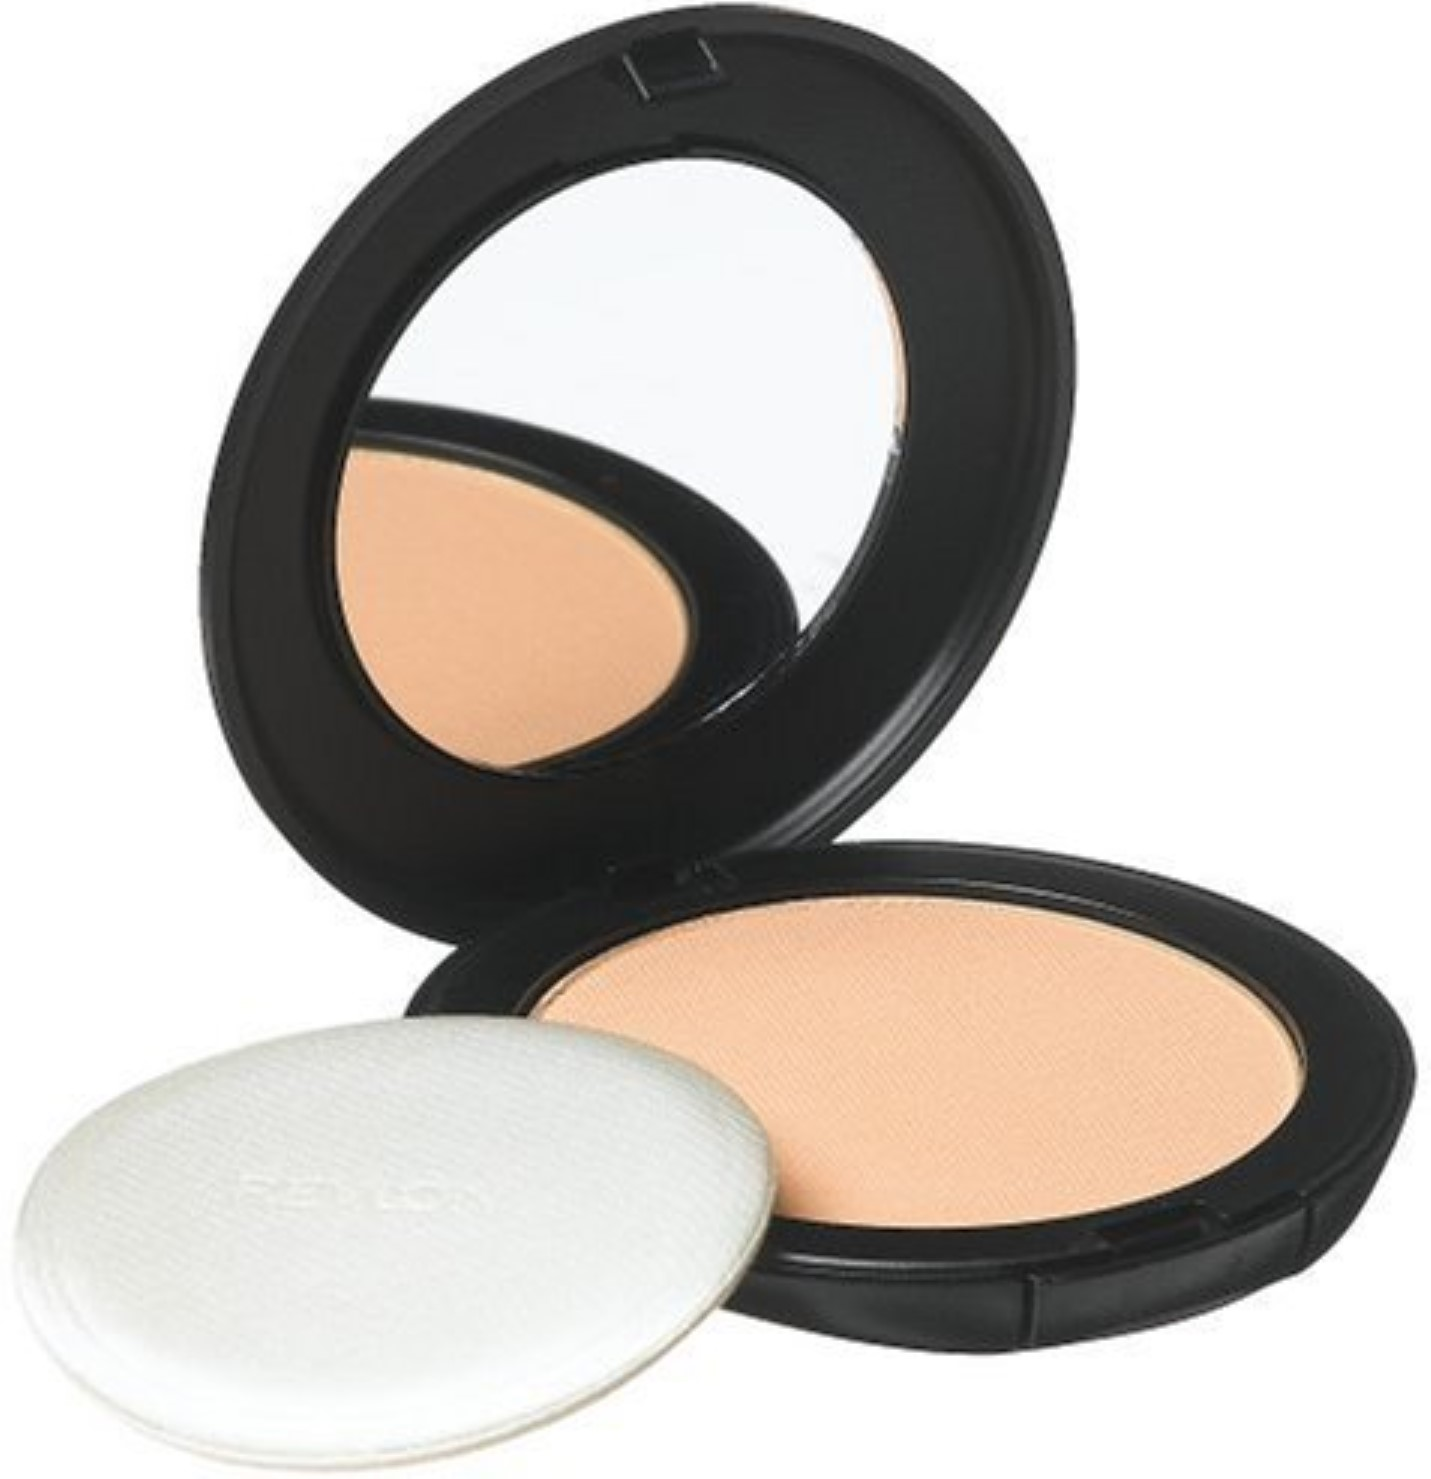 Revlon ColorStay Pressed Powder, Medium [840] 0.3 oz (Pack of 2)